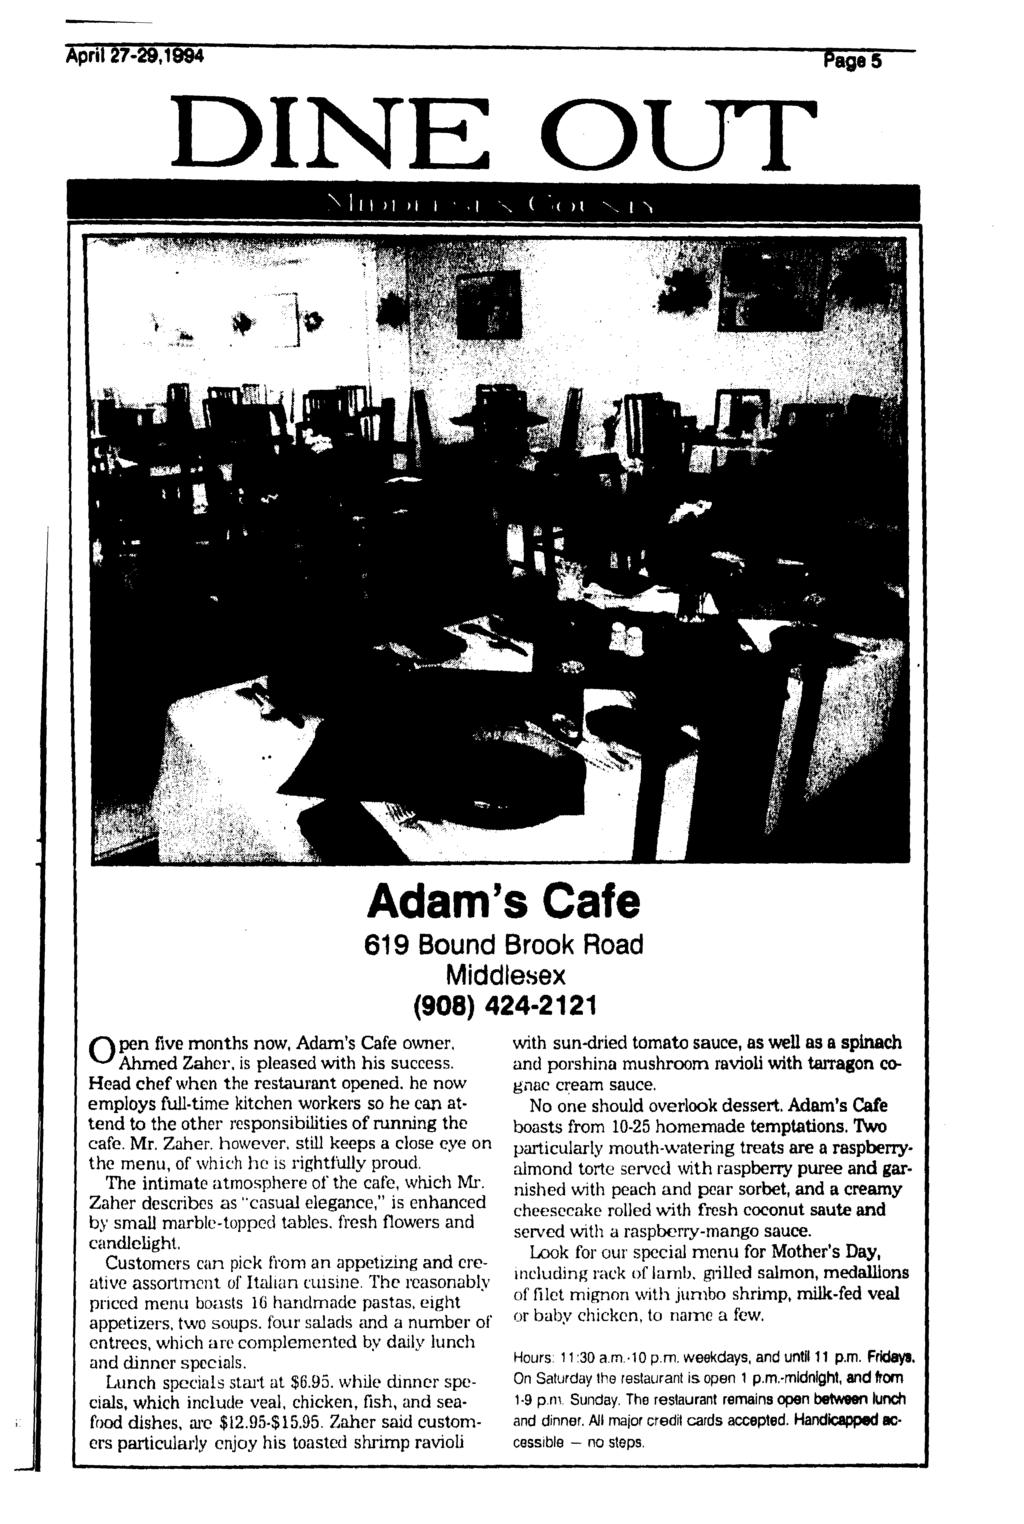 April 27-29,1994 DINE OUT 1 i > i H \n Adam's Cafe 619 Bound Brook Road Middlesex (908) 424-2121 five months now, Adam's Cafe owner, Ahmed Zaher, is pleased with his success.